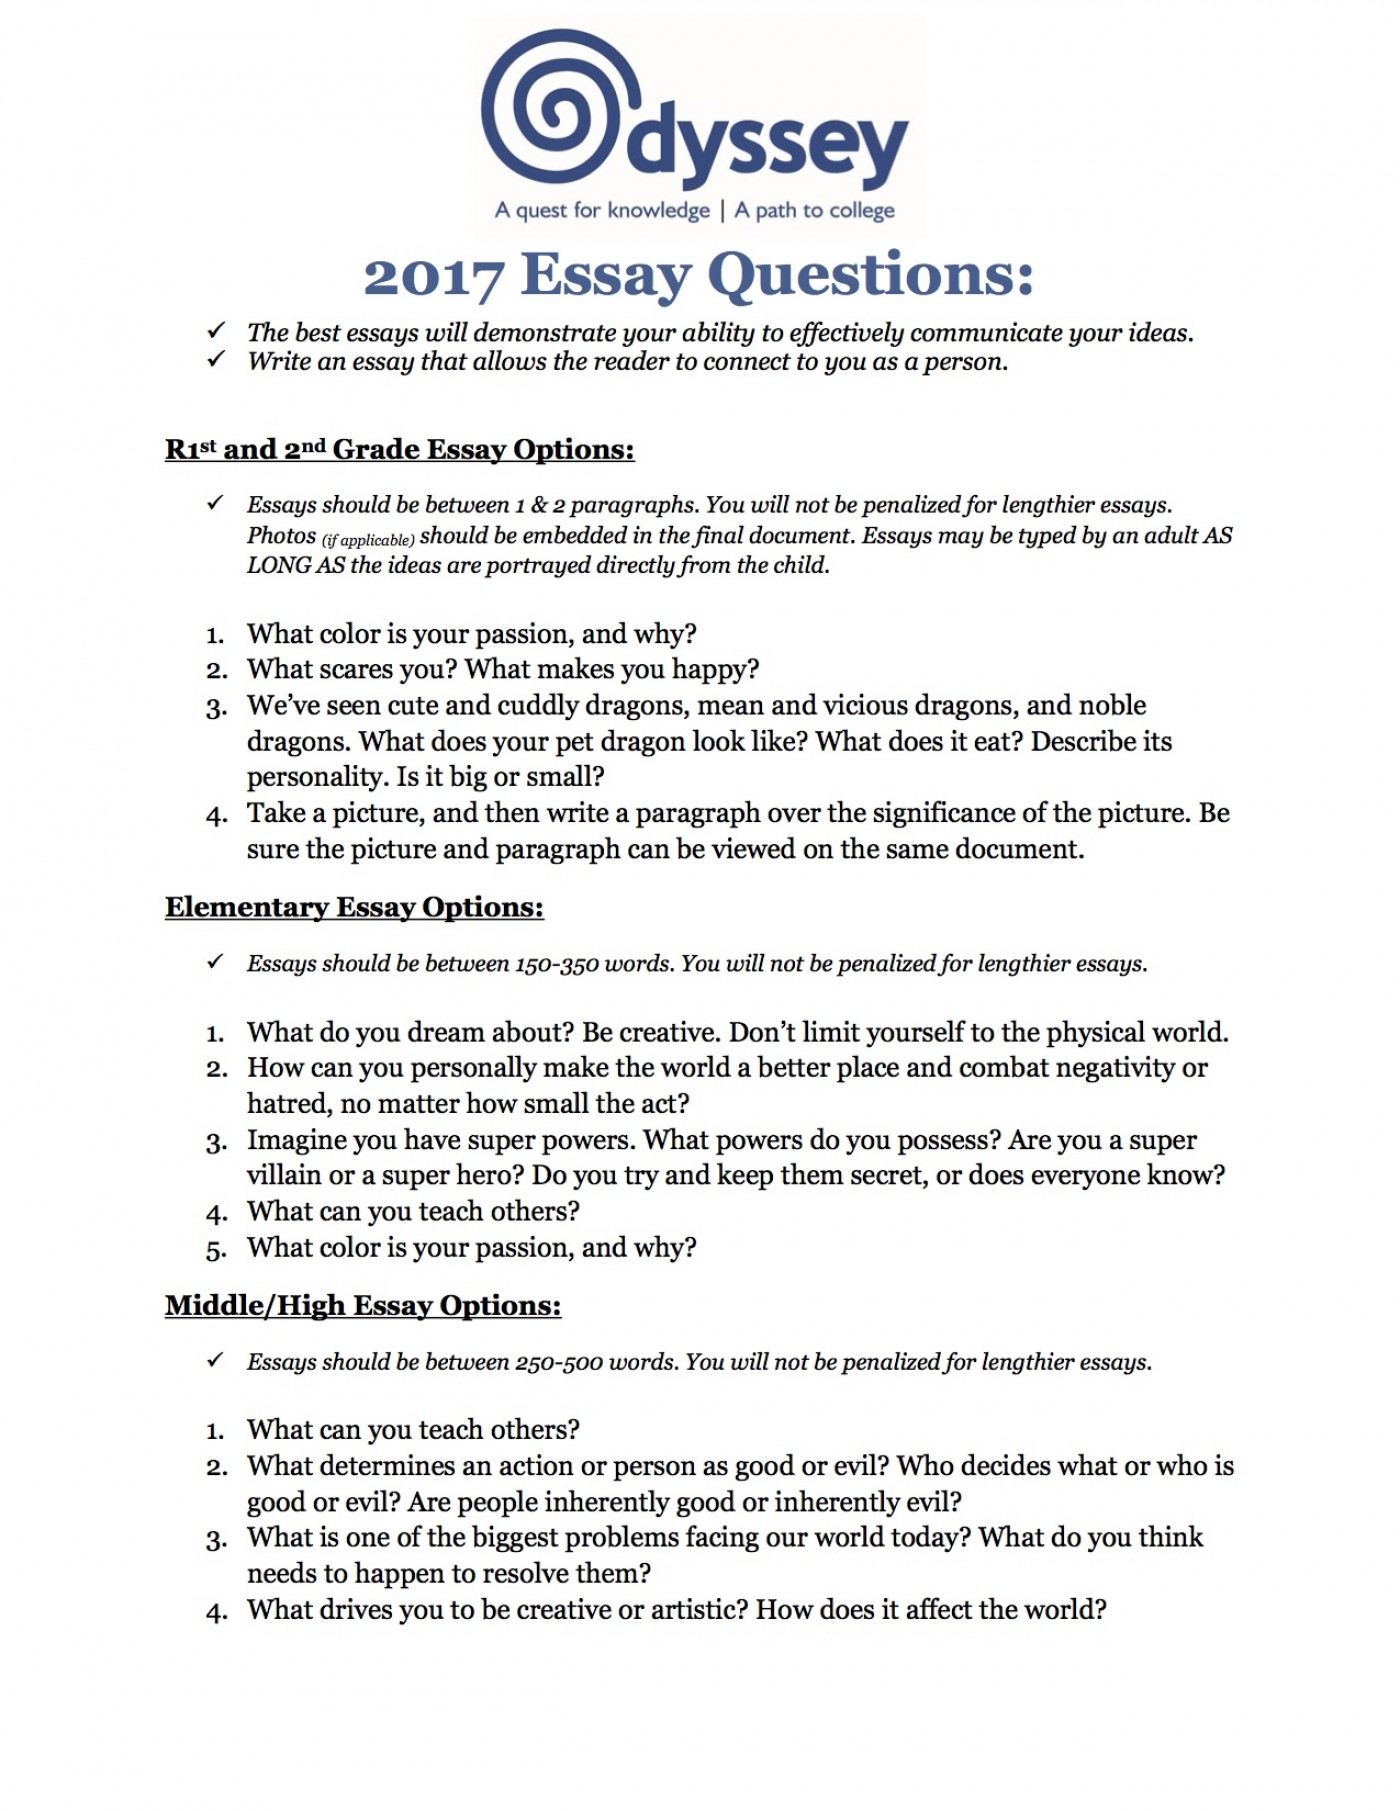 002 Odyssey Essay Topics 5829f1d2c75f9a7c5588b1c6 Proposed20essay20topics202017 Amazing Prompt Prompts 1400